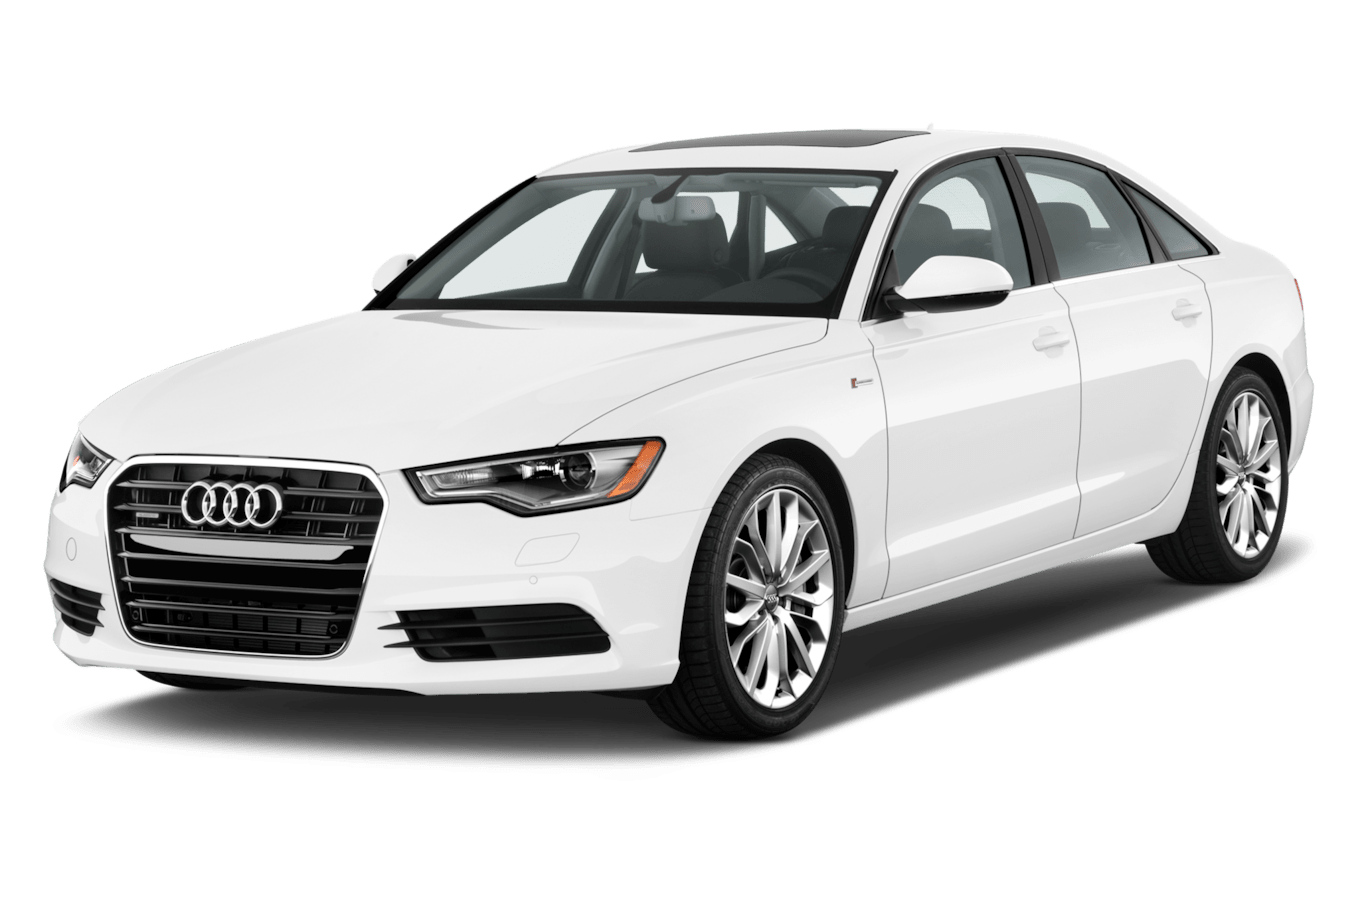 Audi A6 Quattro 2015 Audi A6 Reviews And Rating Motortrend